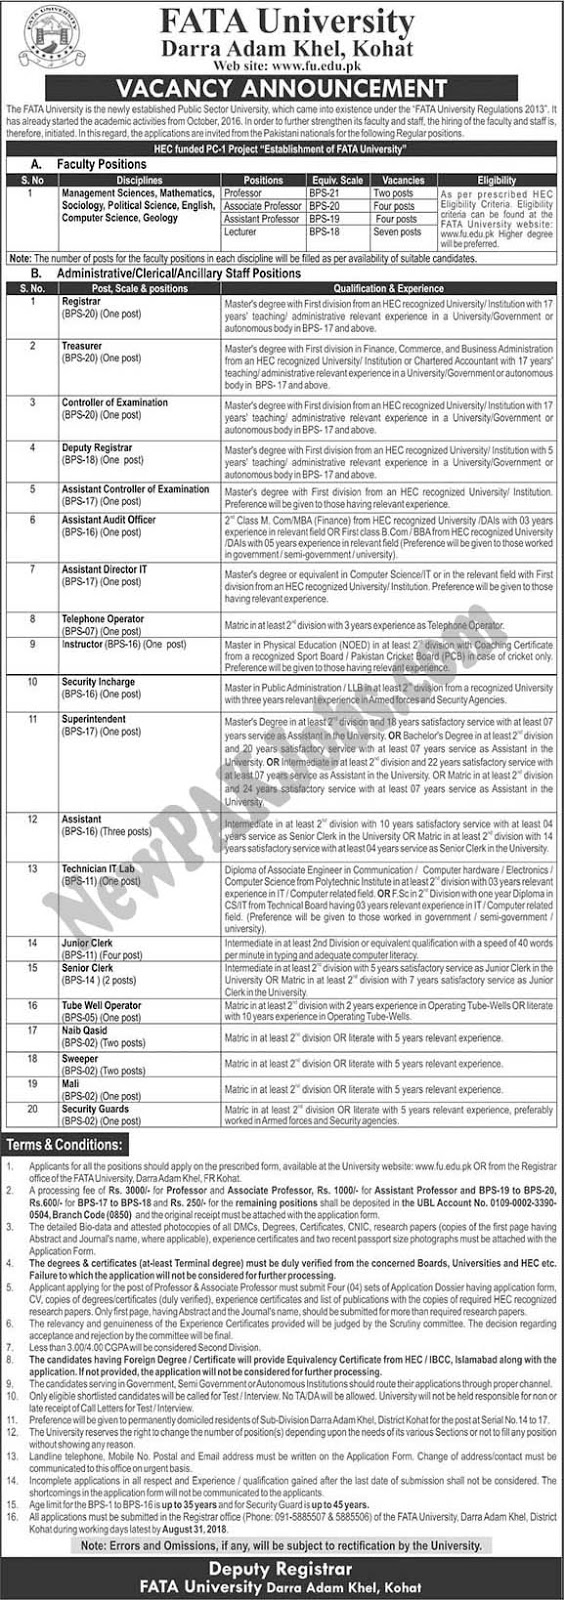 Jobs in FATA University (2018) Darra Adam Khel Kohat